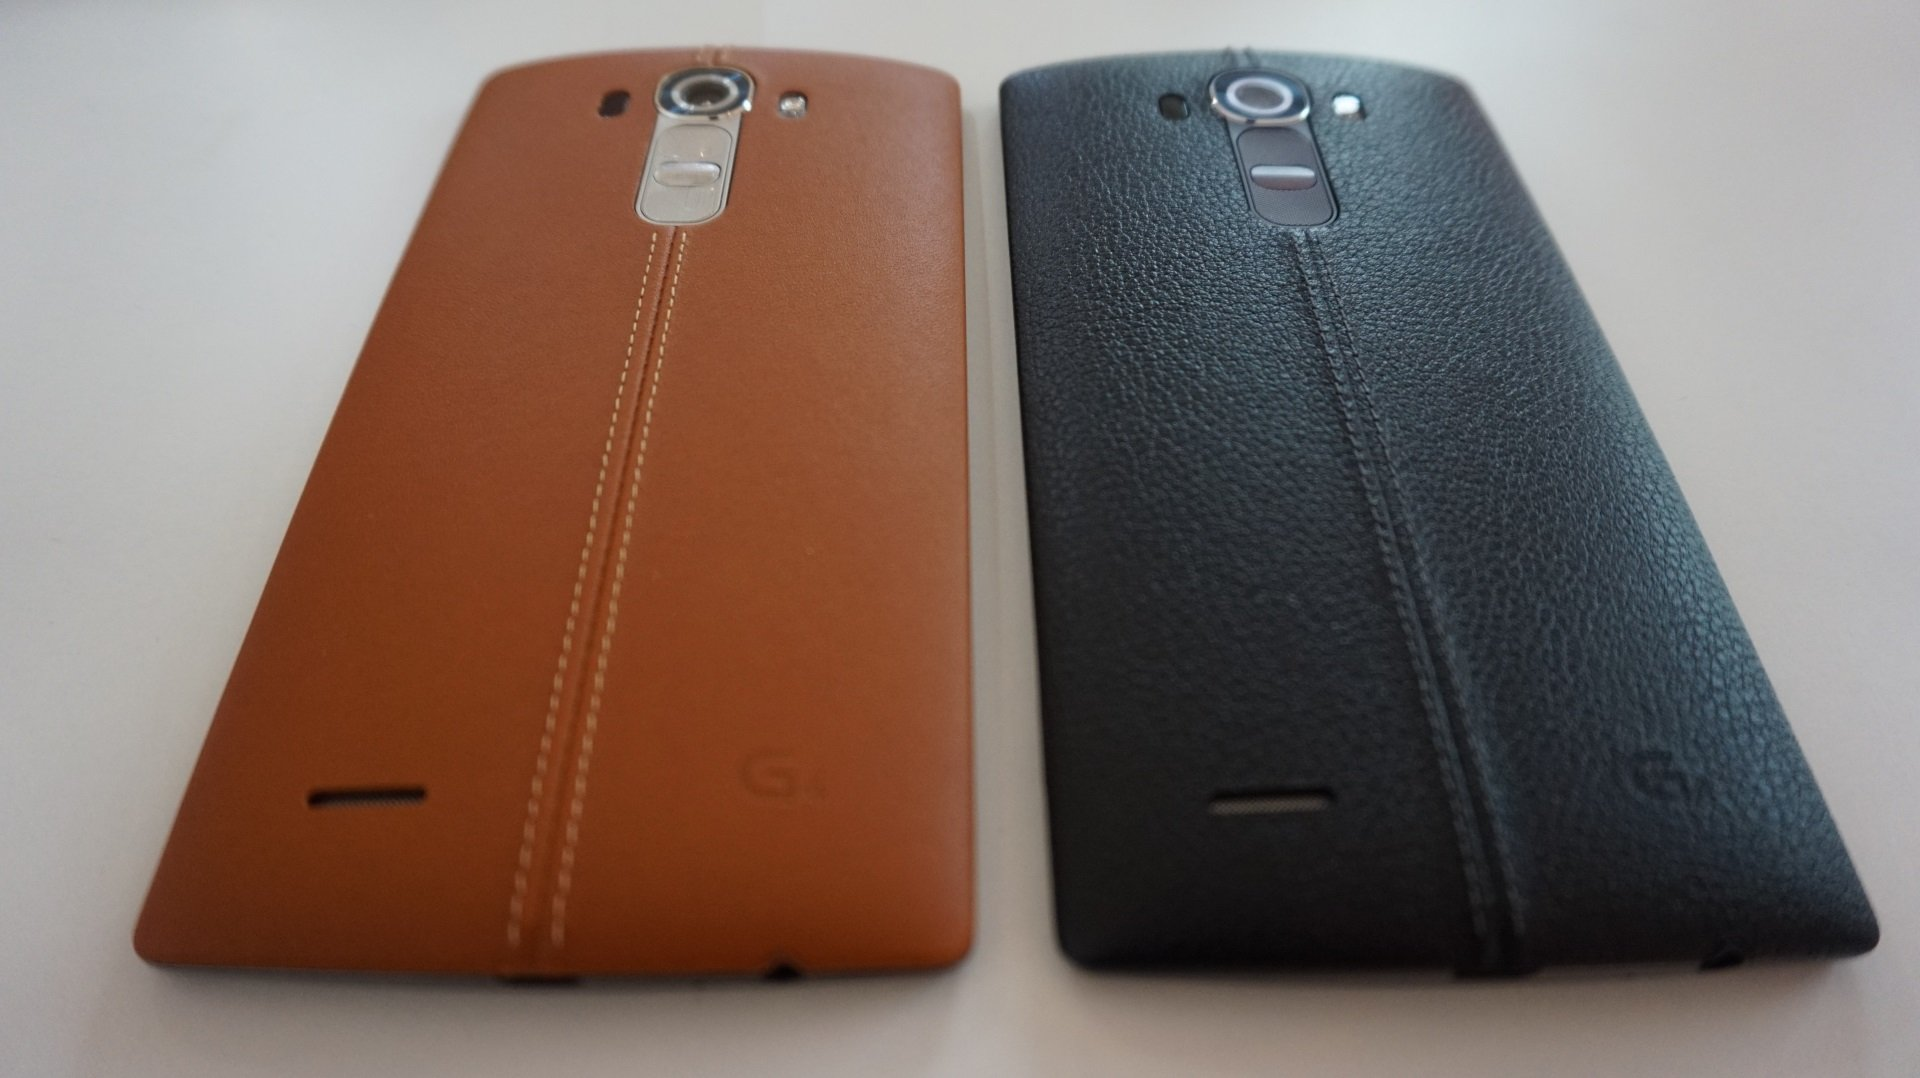 the latest abcf7 ec4f0 LG G4 review: Discontinued and forgotten | Expert Reviews